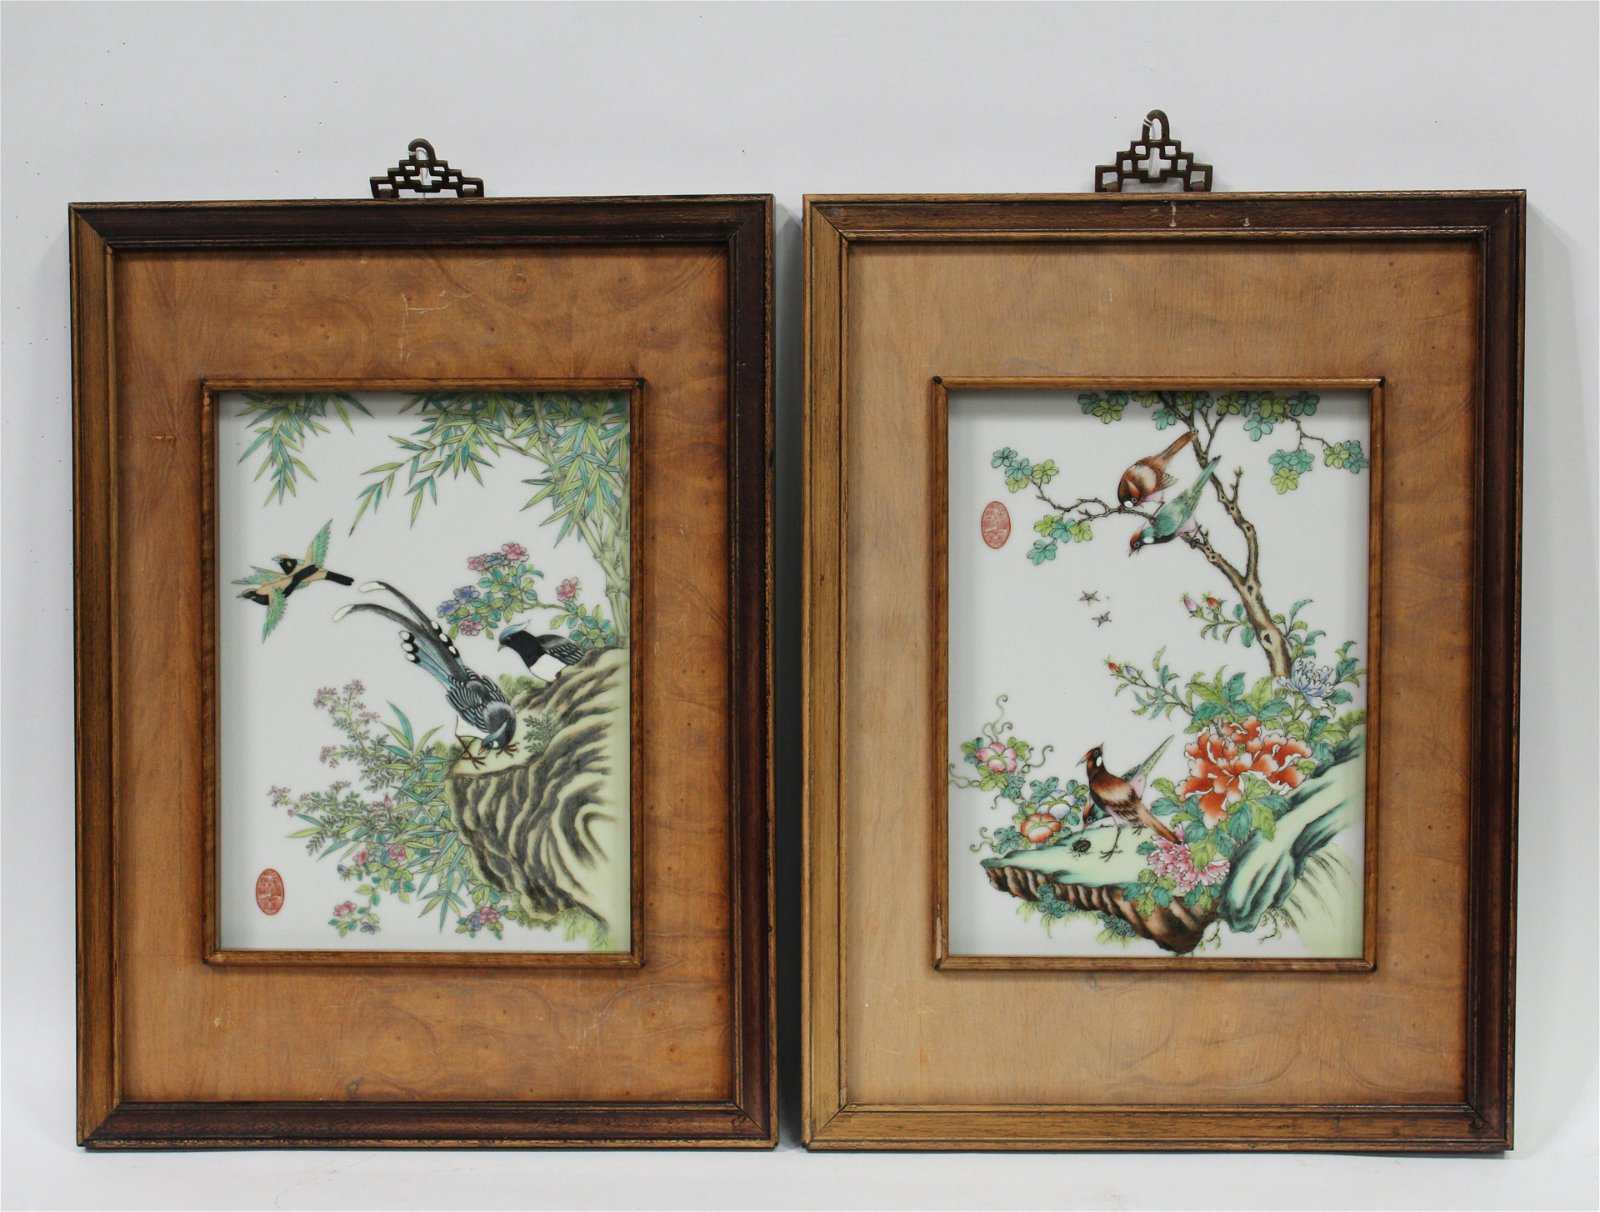 A Pair of Framed Chinese Porcelain Plaque